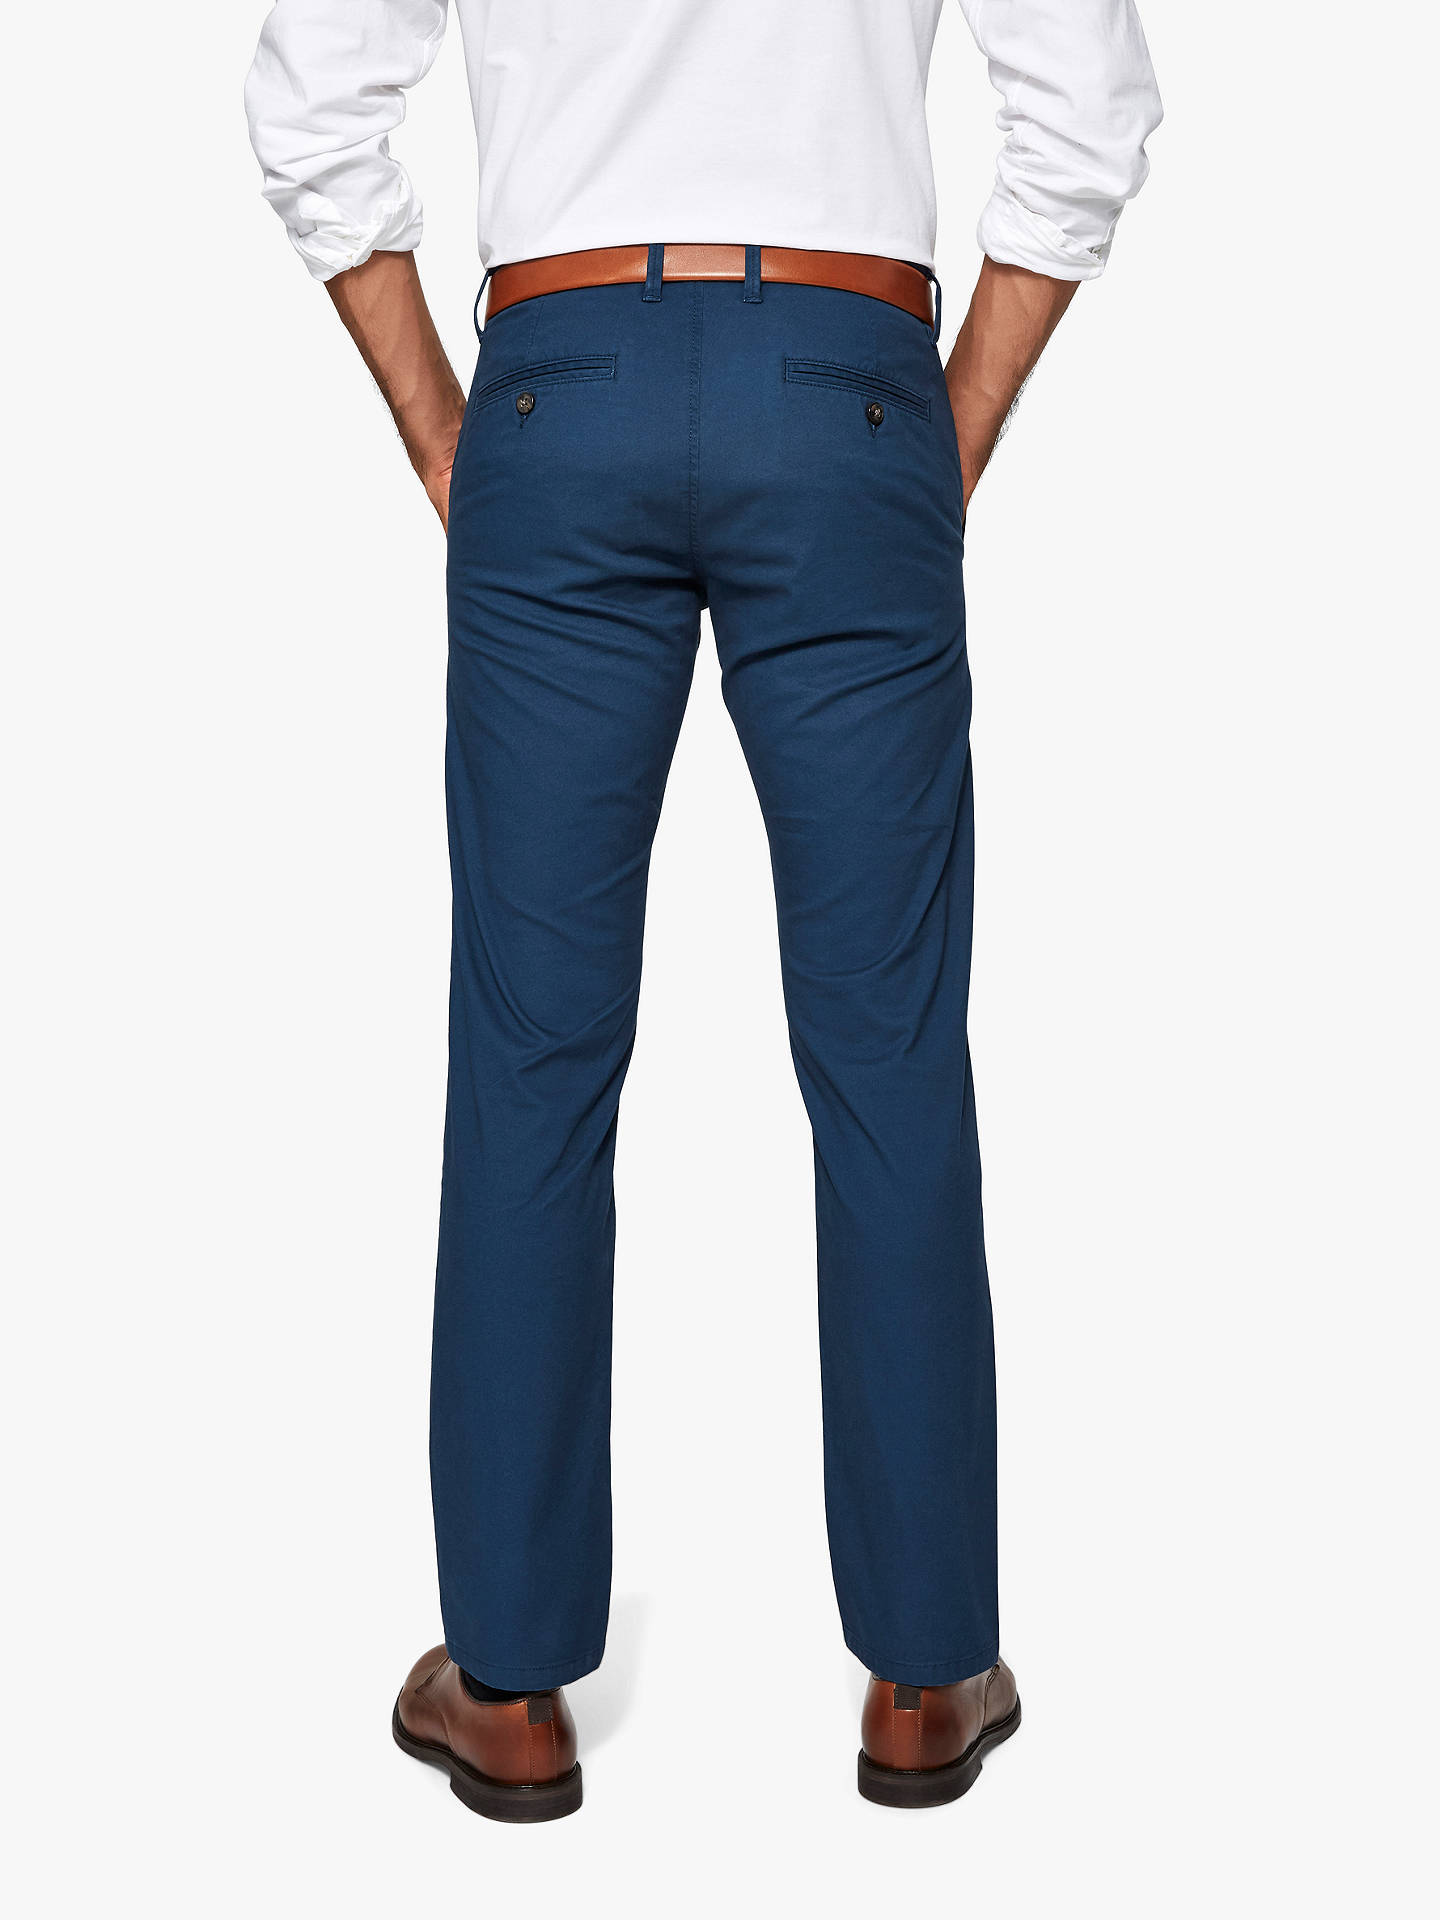 Buy SELECTED HOMME Three Paris Organic Cotton Stretch Chinos, Moonlit Ocean, 30R Online at johnlewis.com